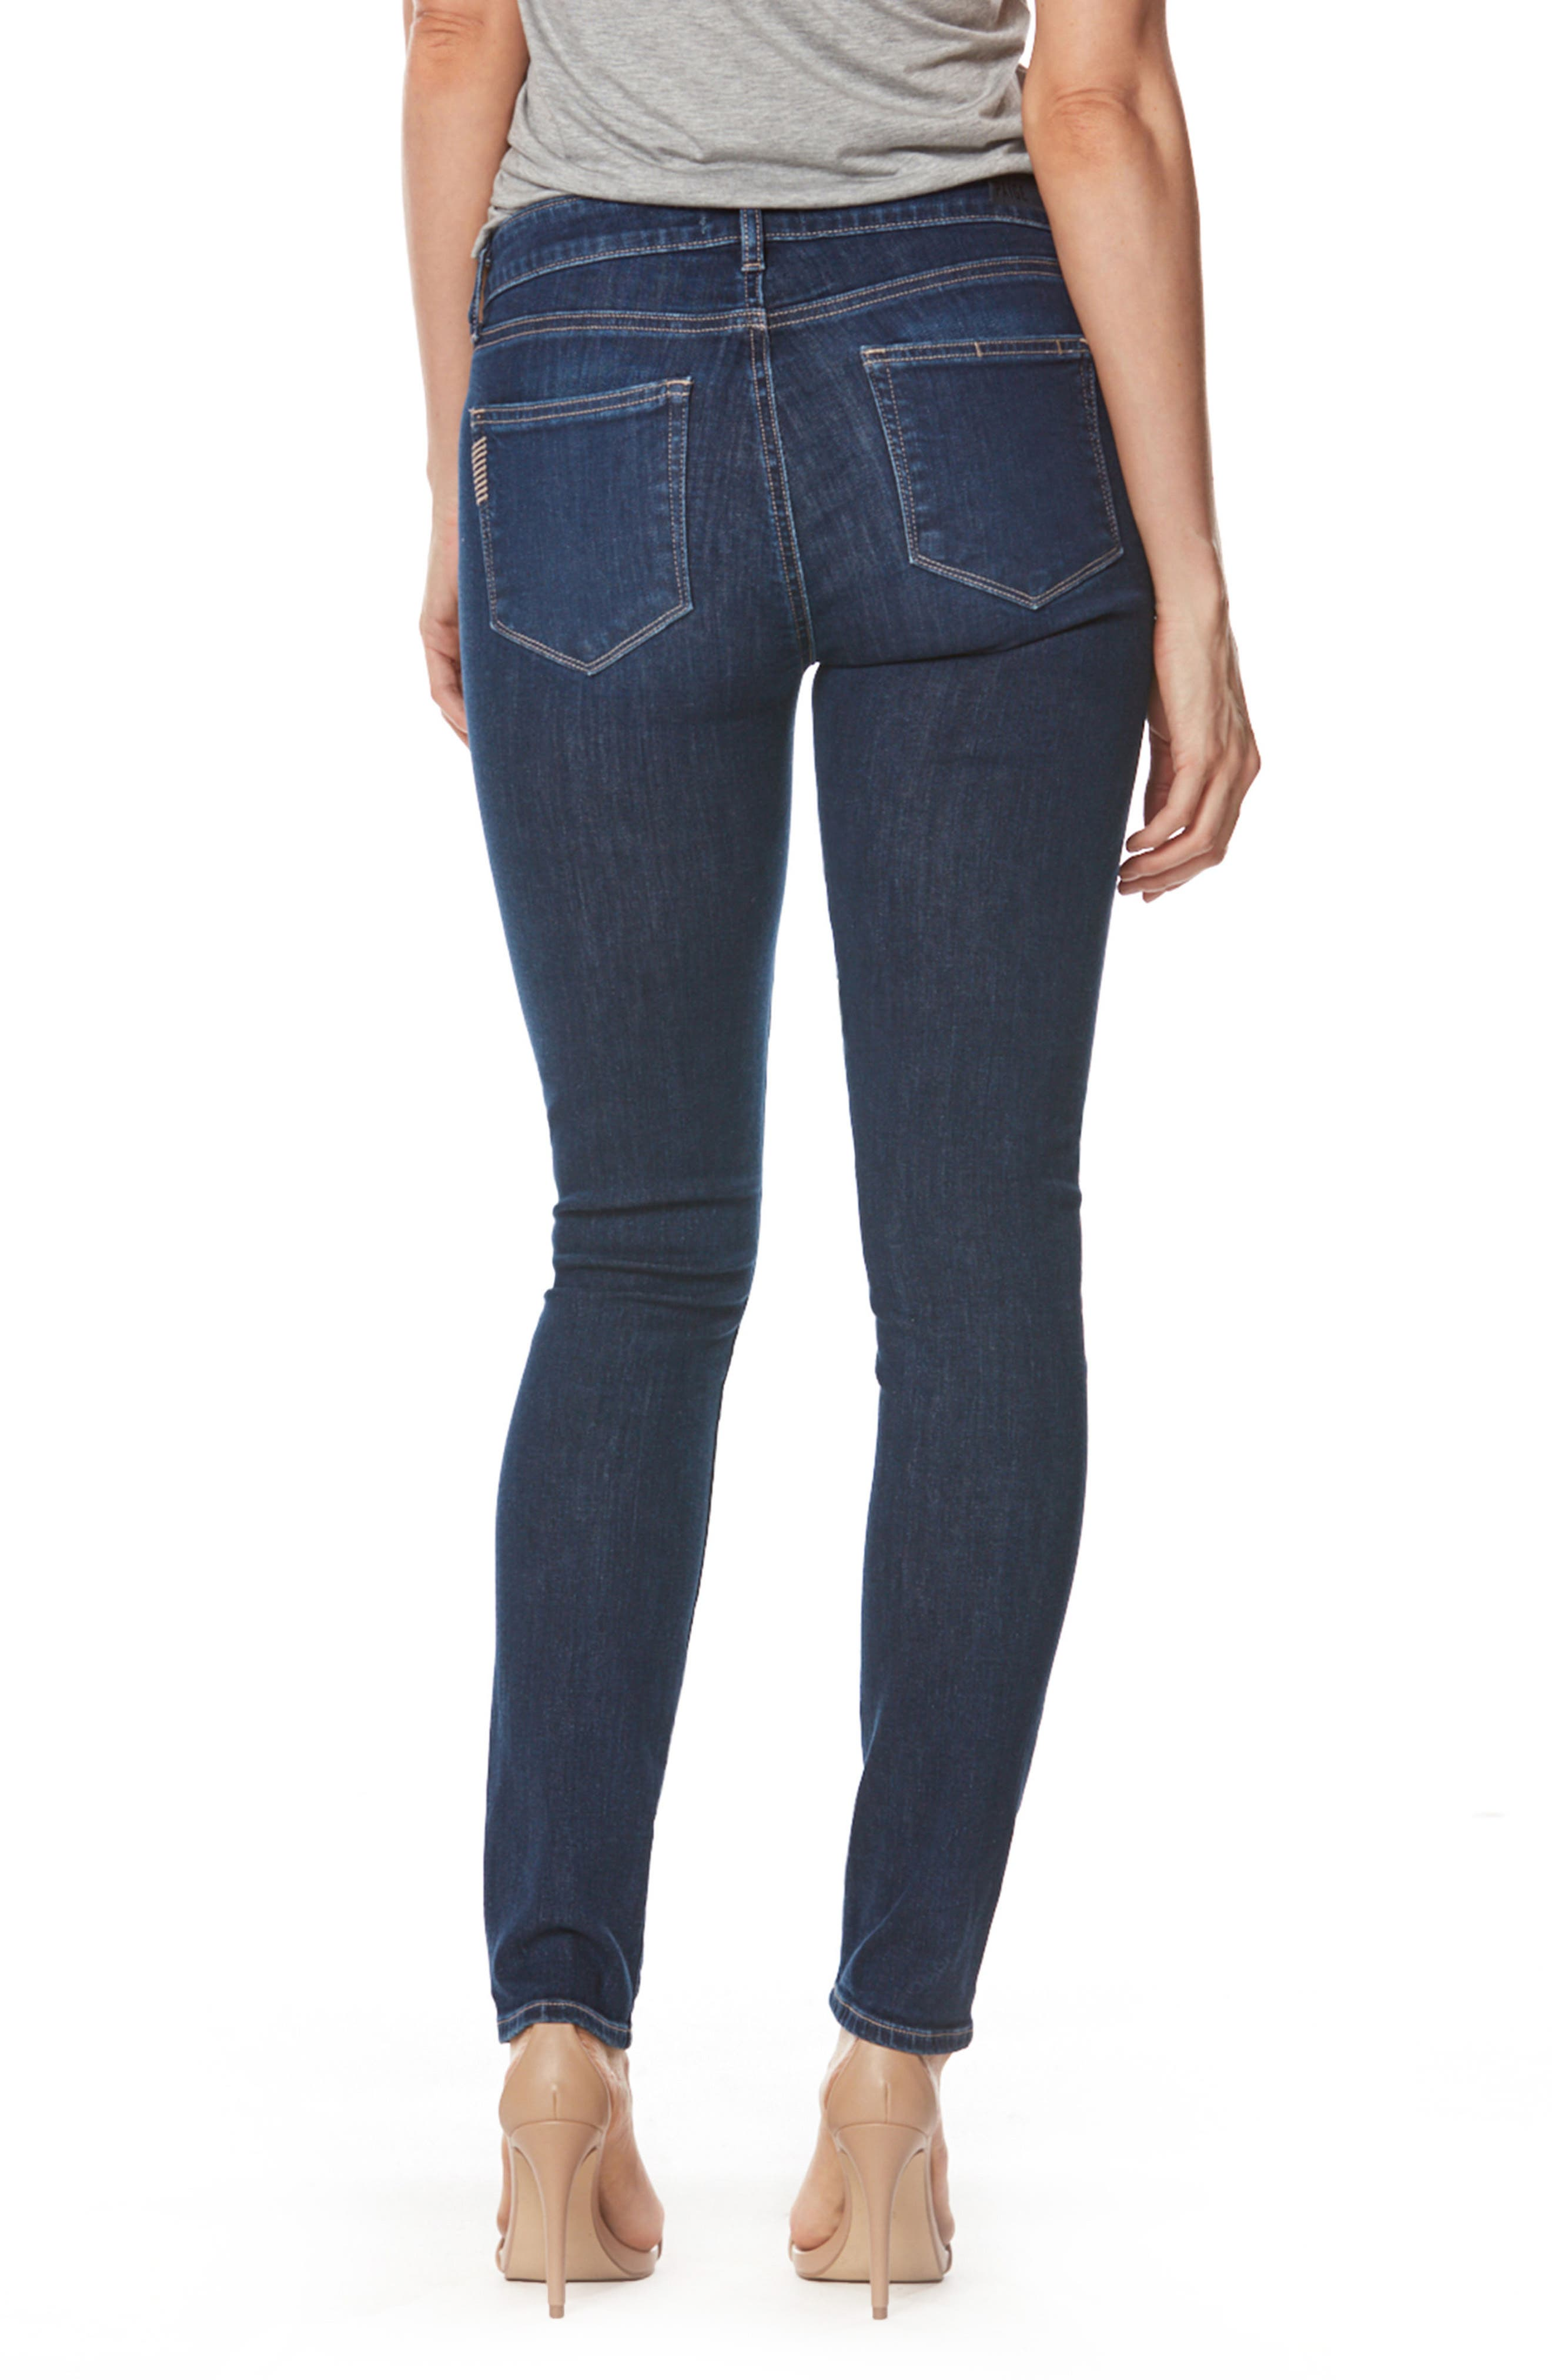 Transcend - Verdugo Ultra Skinny Jeans,                             Alternate thumbnail 2, color,                             400